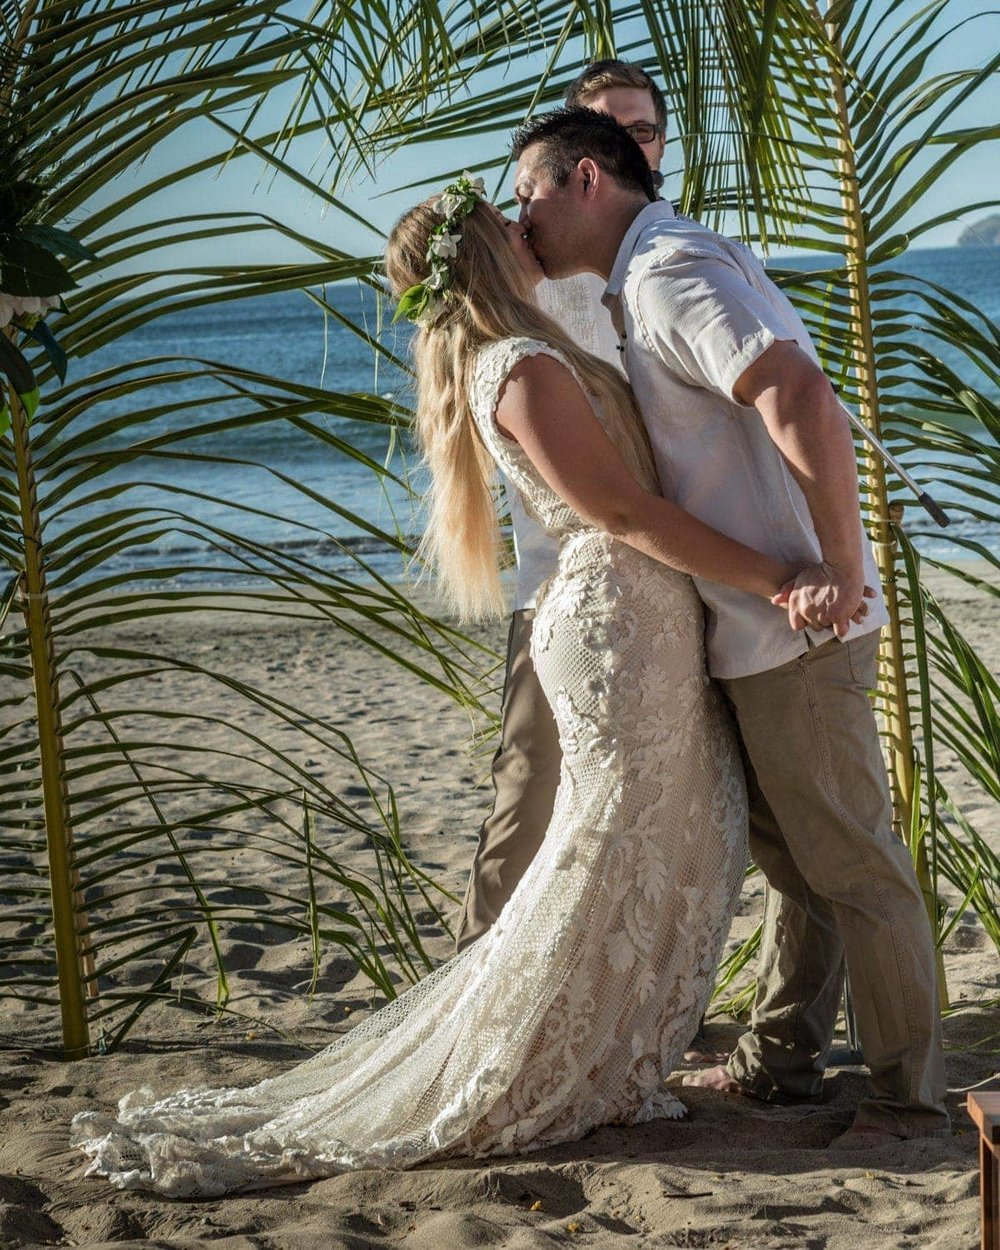 Couple kisses after saying wedding vows on beach in Costa Rica.